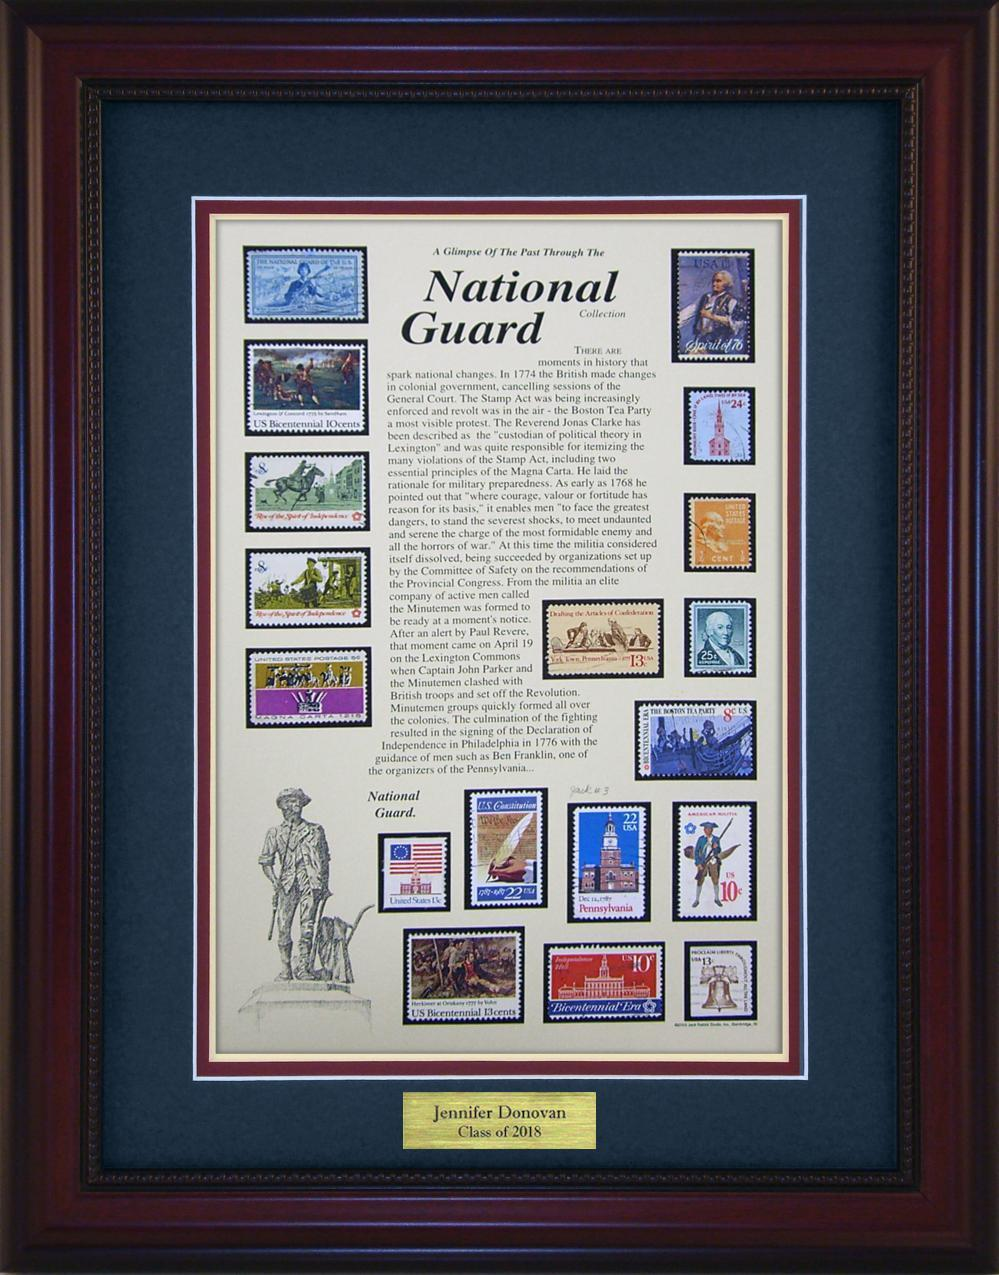 National Guard - Personalized Unique Framed Gift